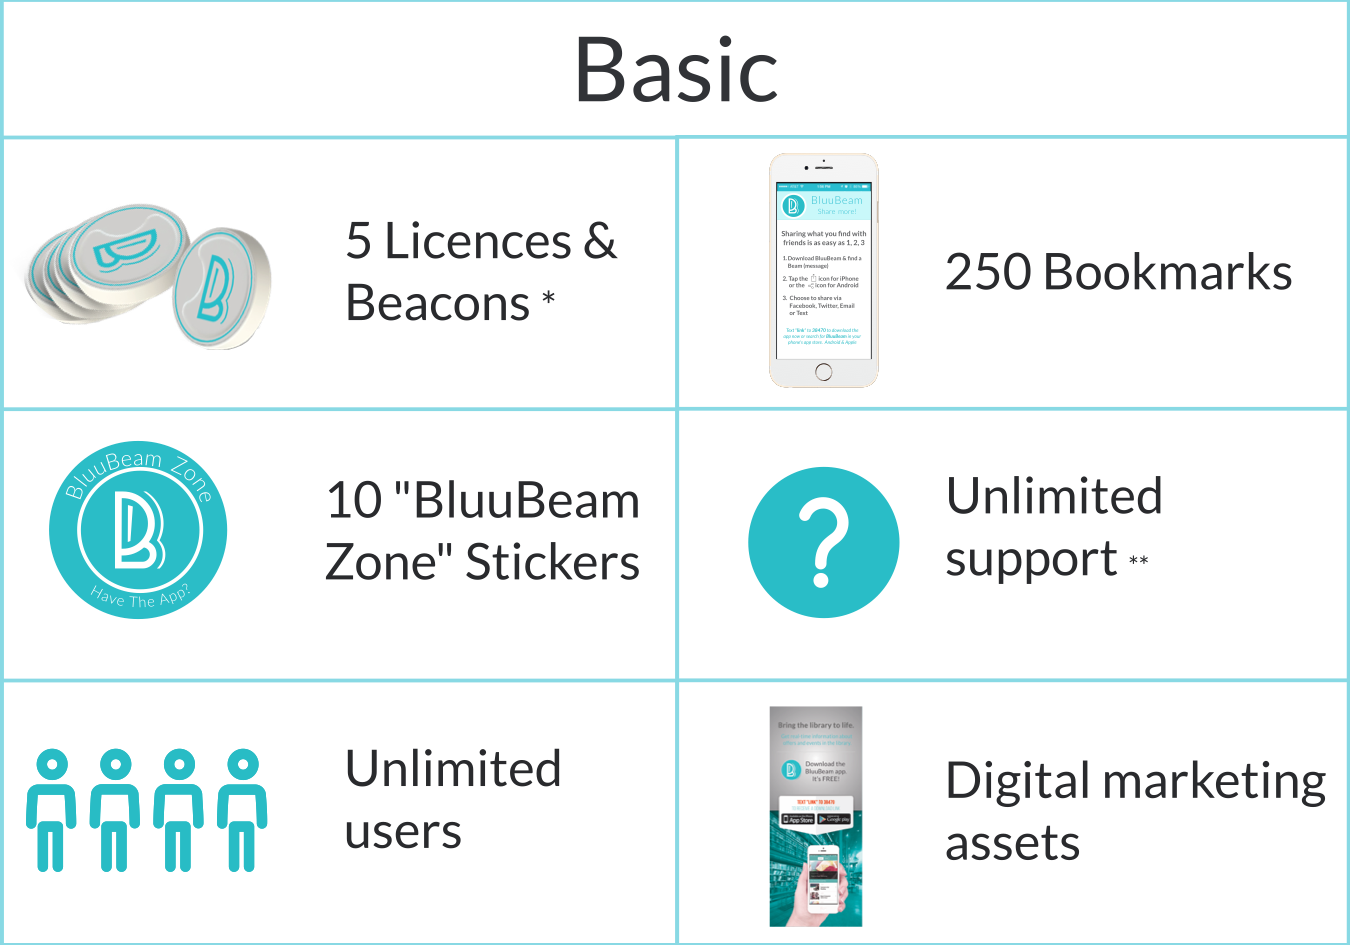 Basic License get's you everything you need to get started with iBeacons.